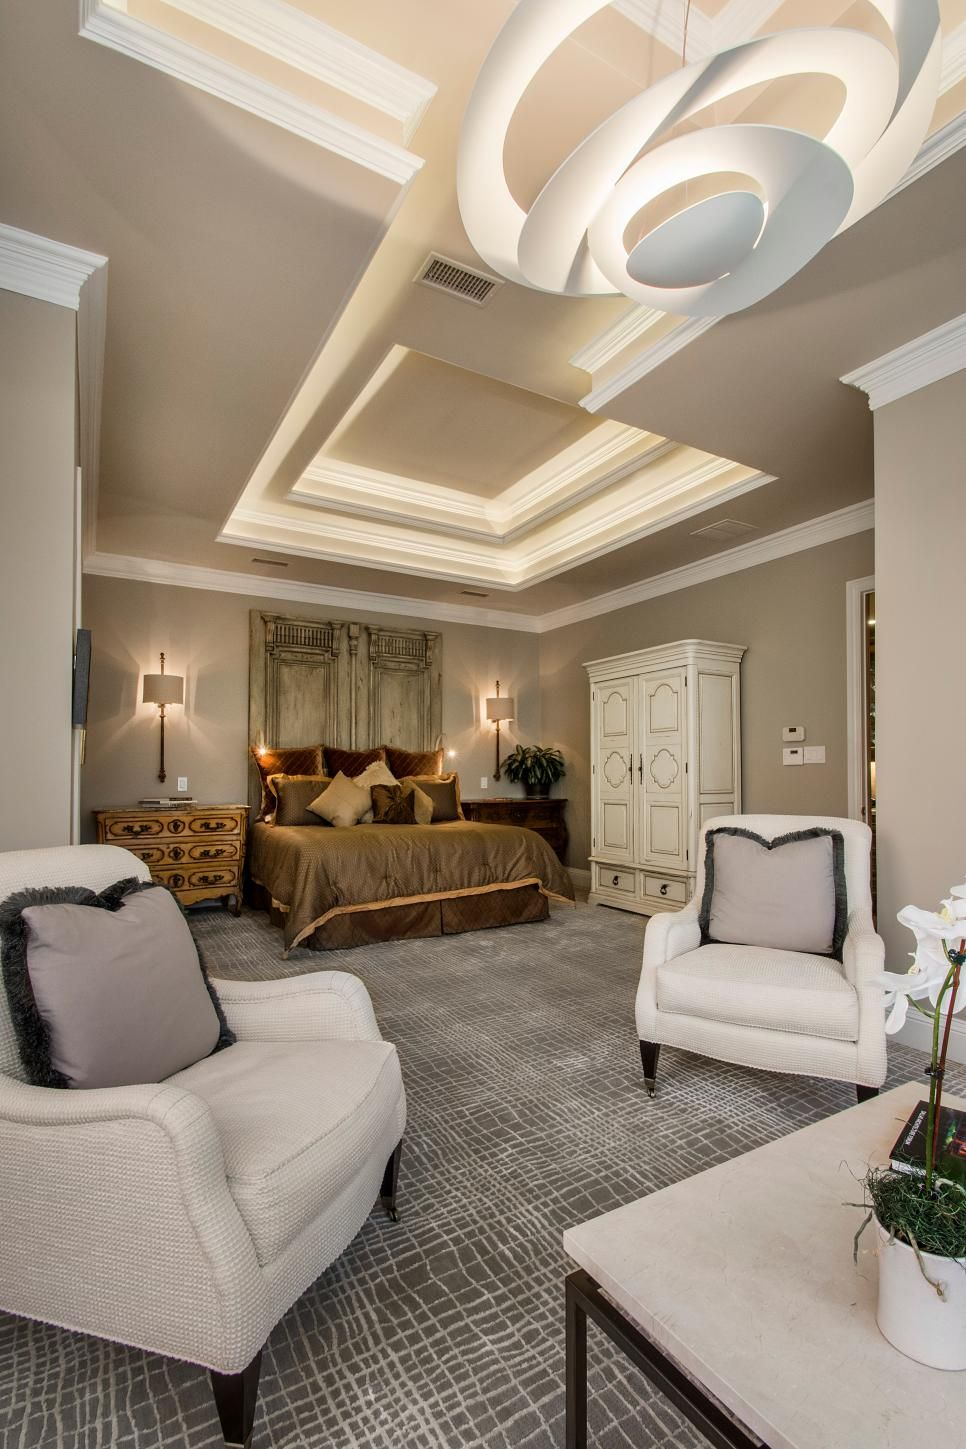 The tray ceiling was given a touch of class with LED strip